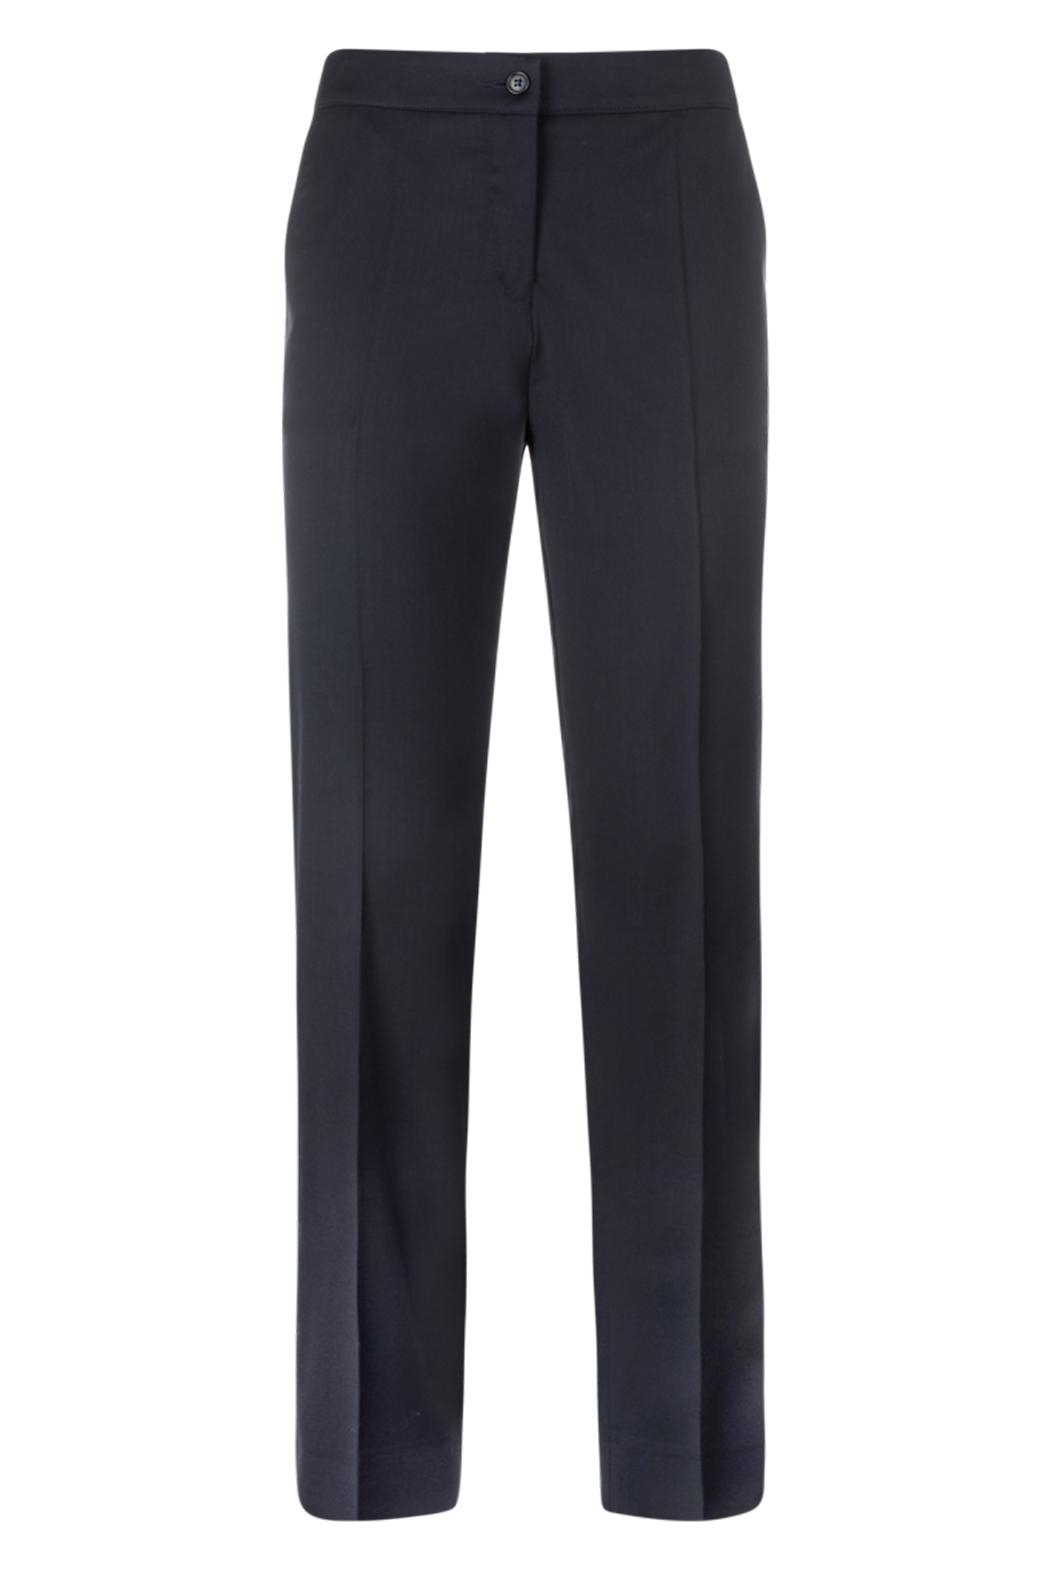 RHUMAA Tailored Trouser - Main Image